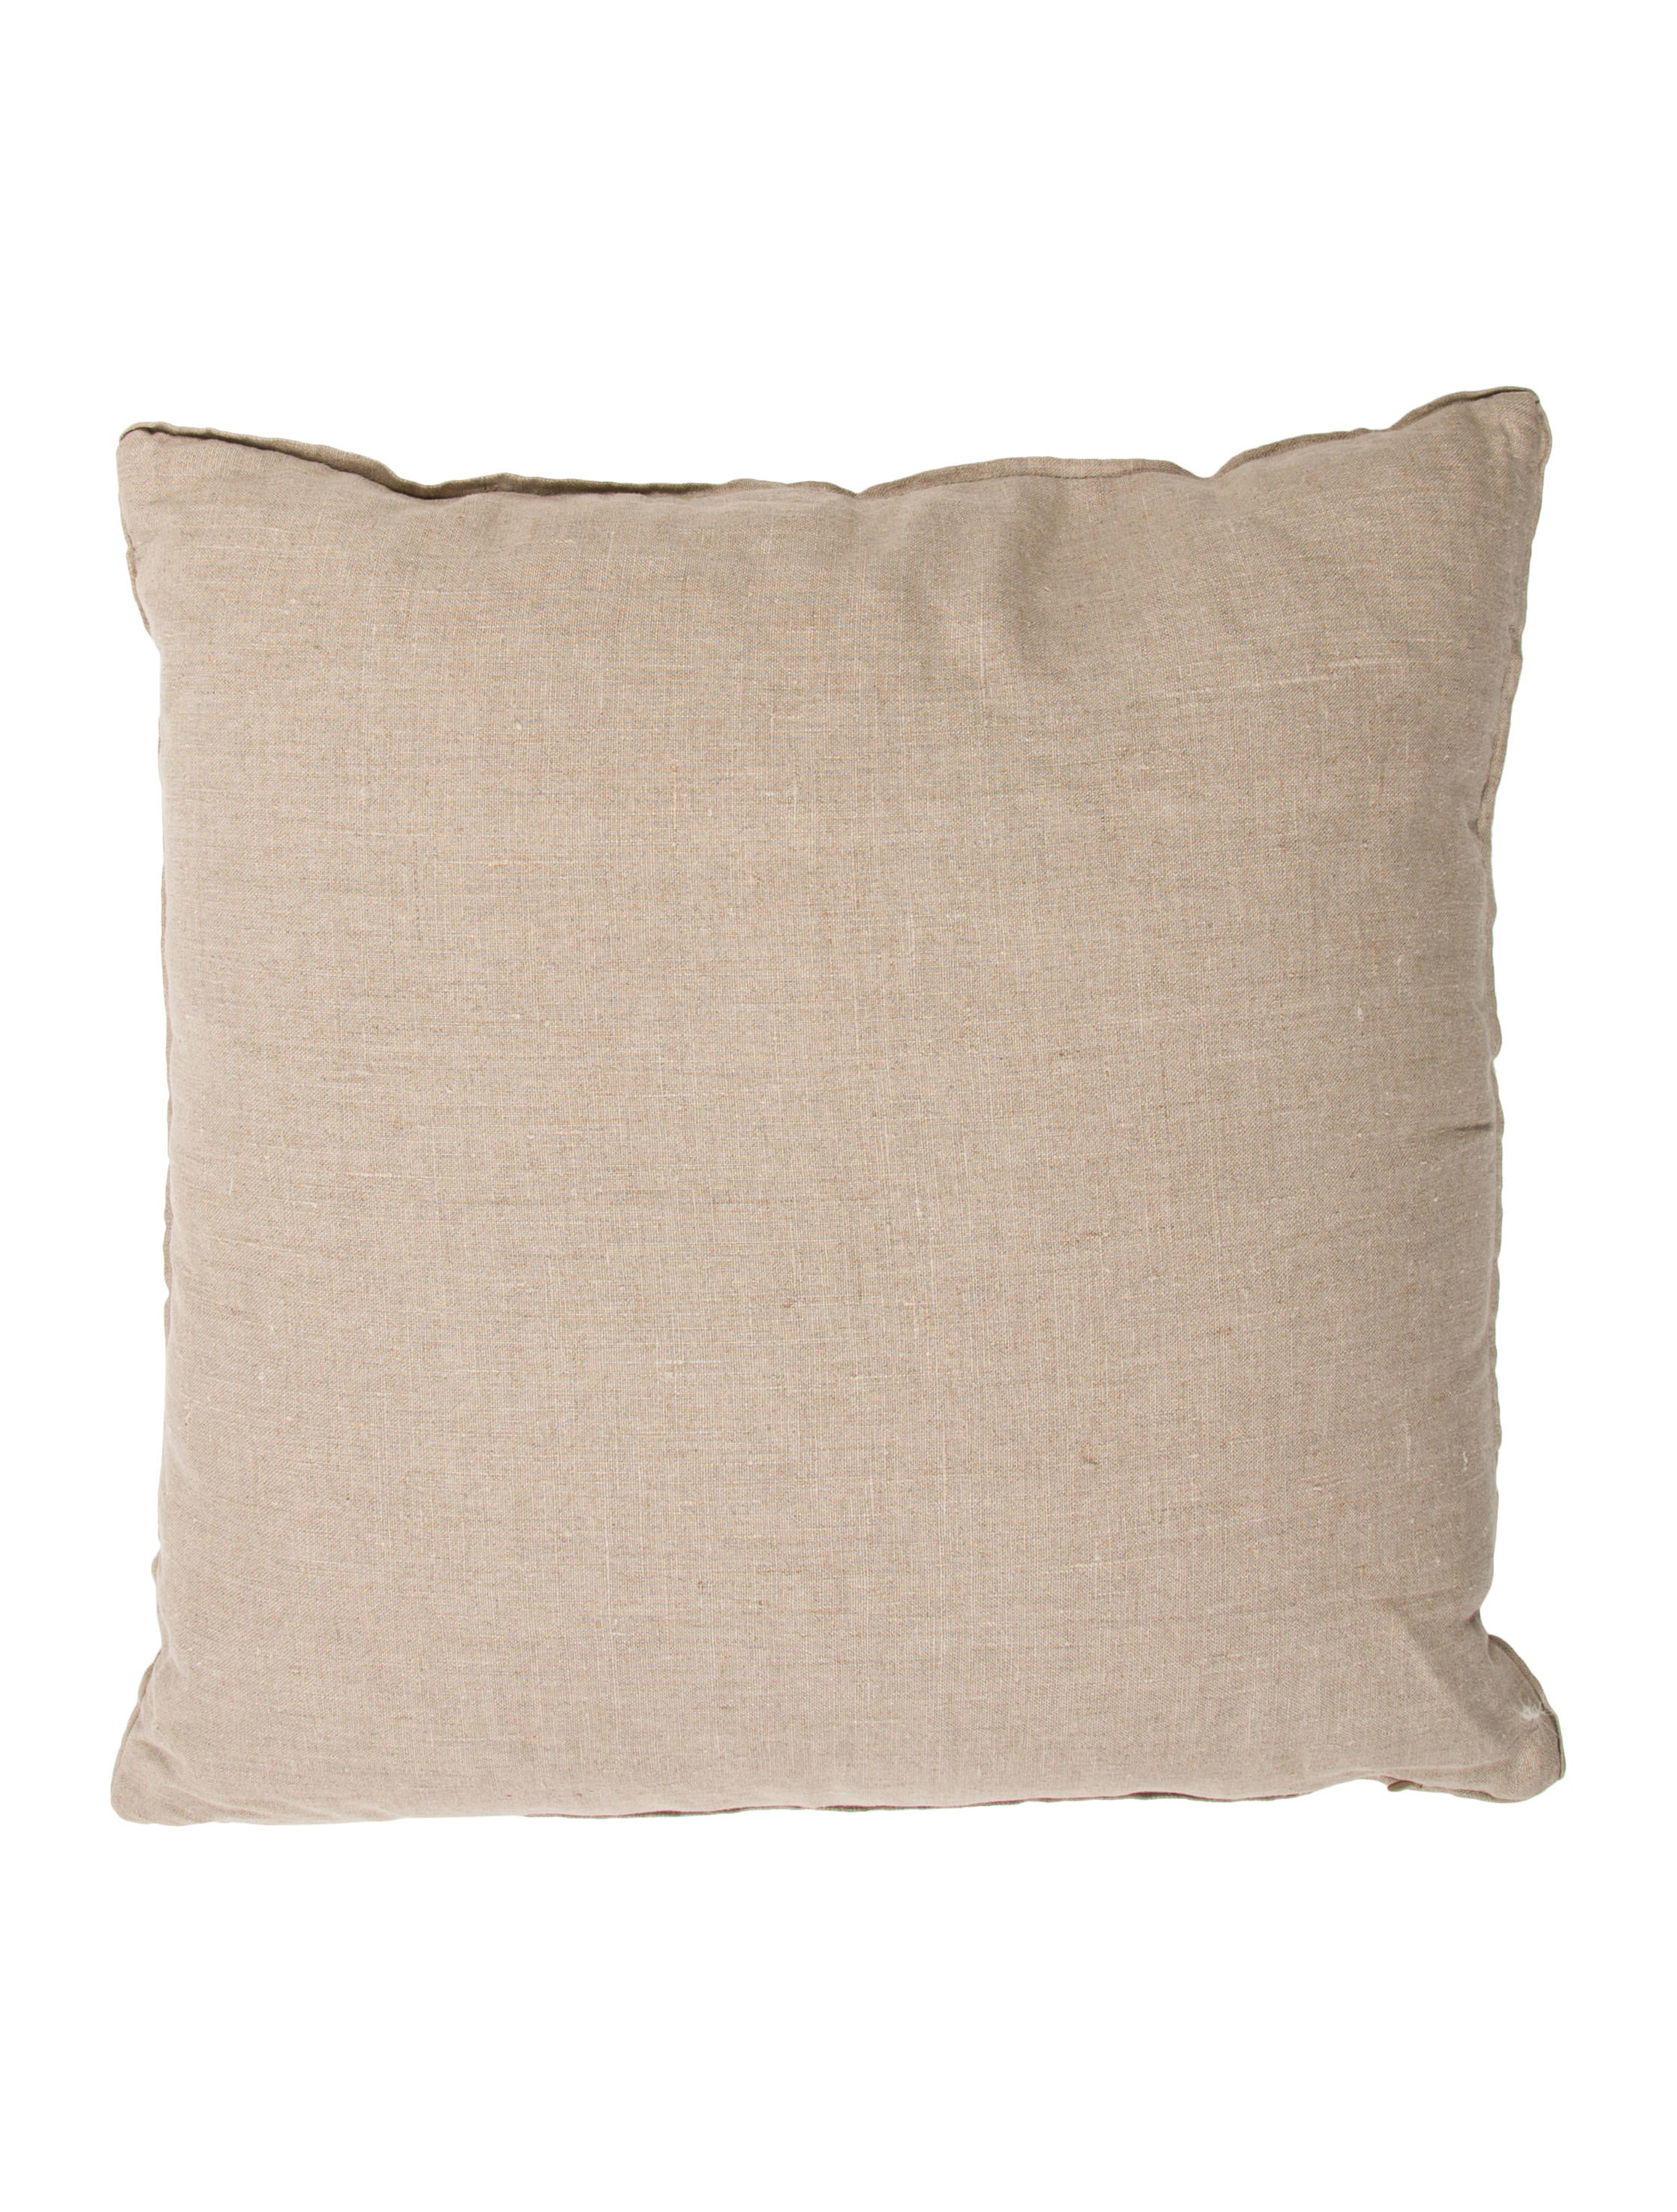 Lavender Throw Pillows : Hand-Painted Linen Throw Pillow - Bedding And Bath - BAR20434 The RealReal